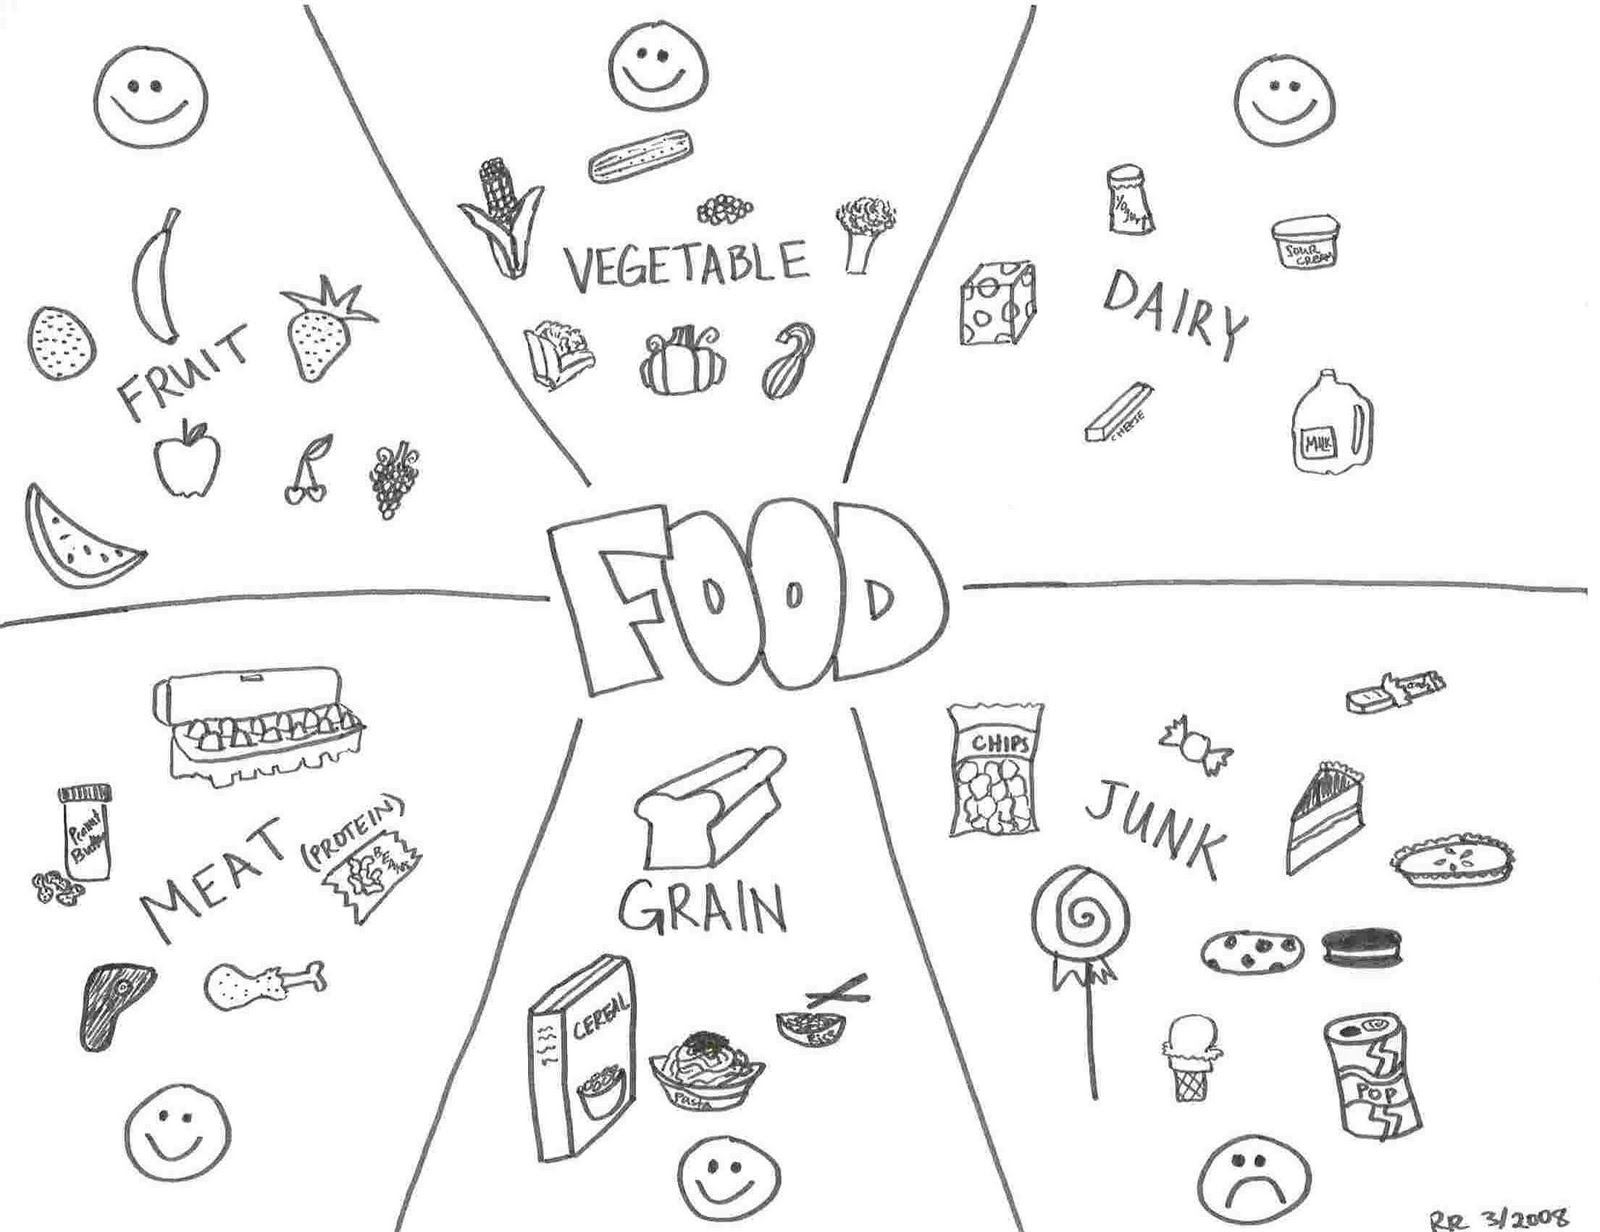 Adult Top Junk Food Coloring Pages Gallery Images best coloring pictures of healthy and unhealthy foods printable food worksheets preschool pages gallery images